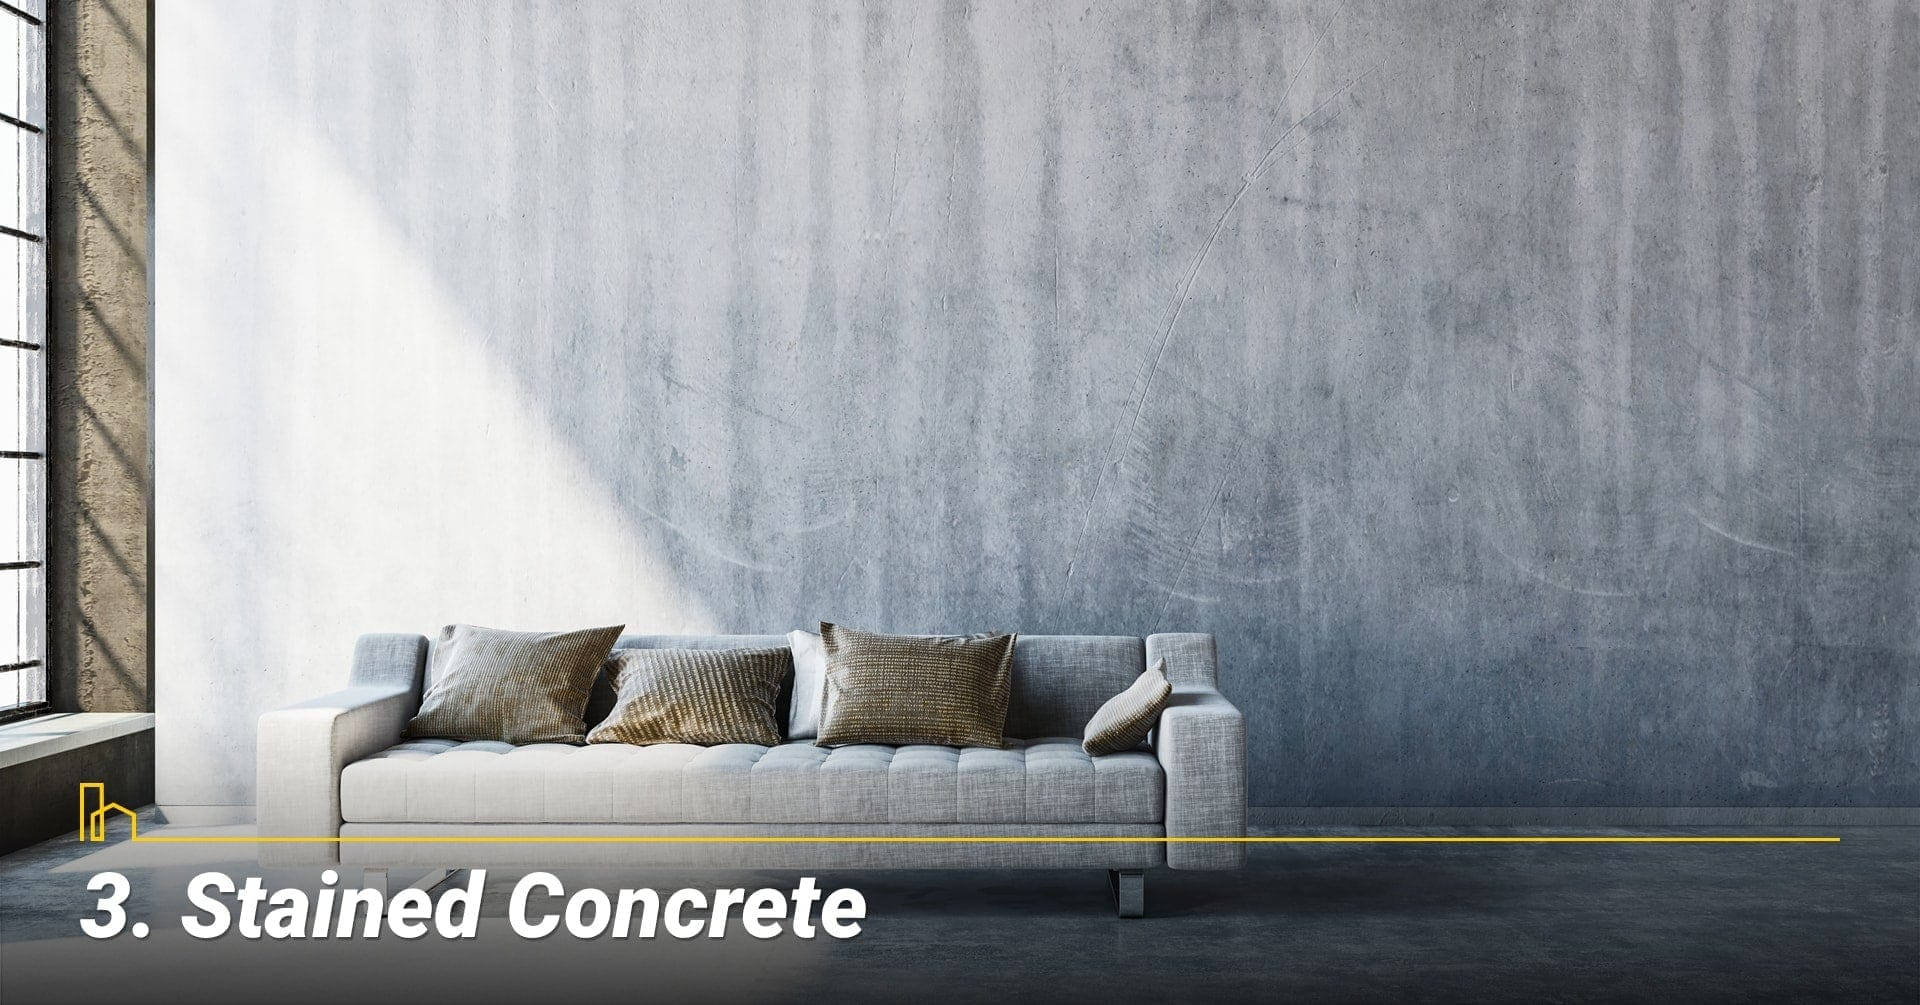 Stained Concrete, cover your floor with concrete